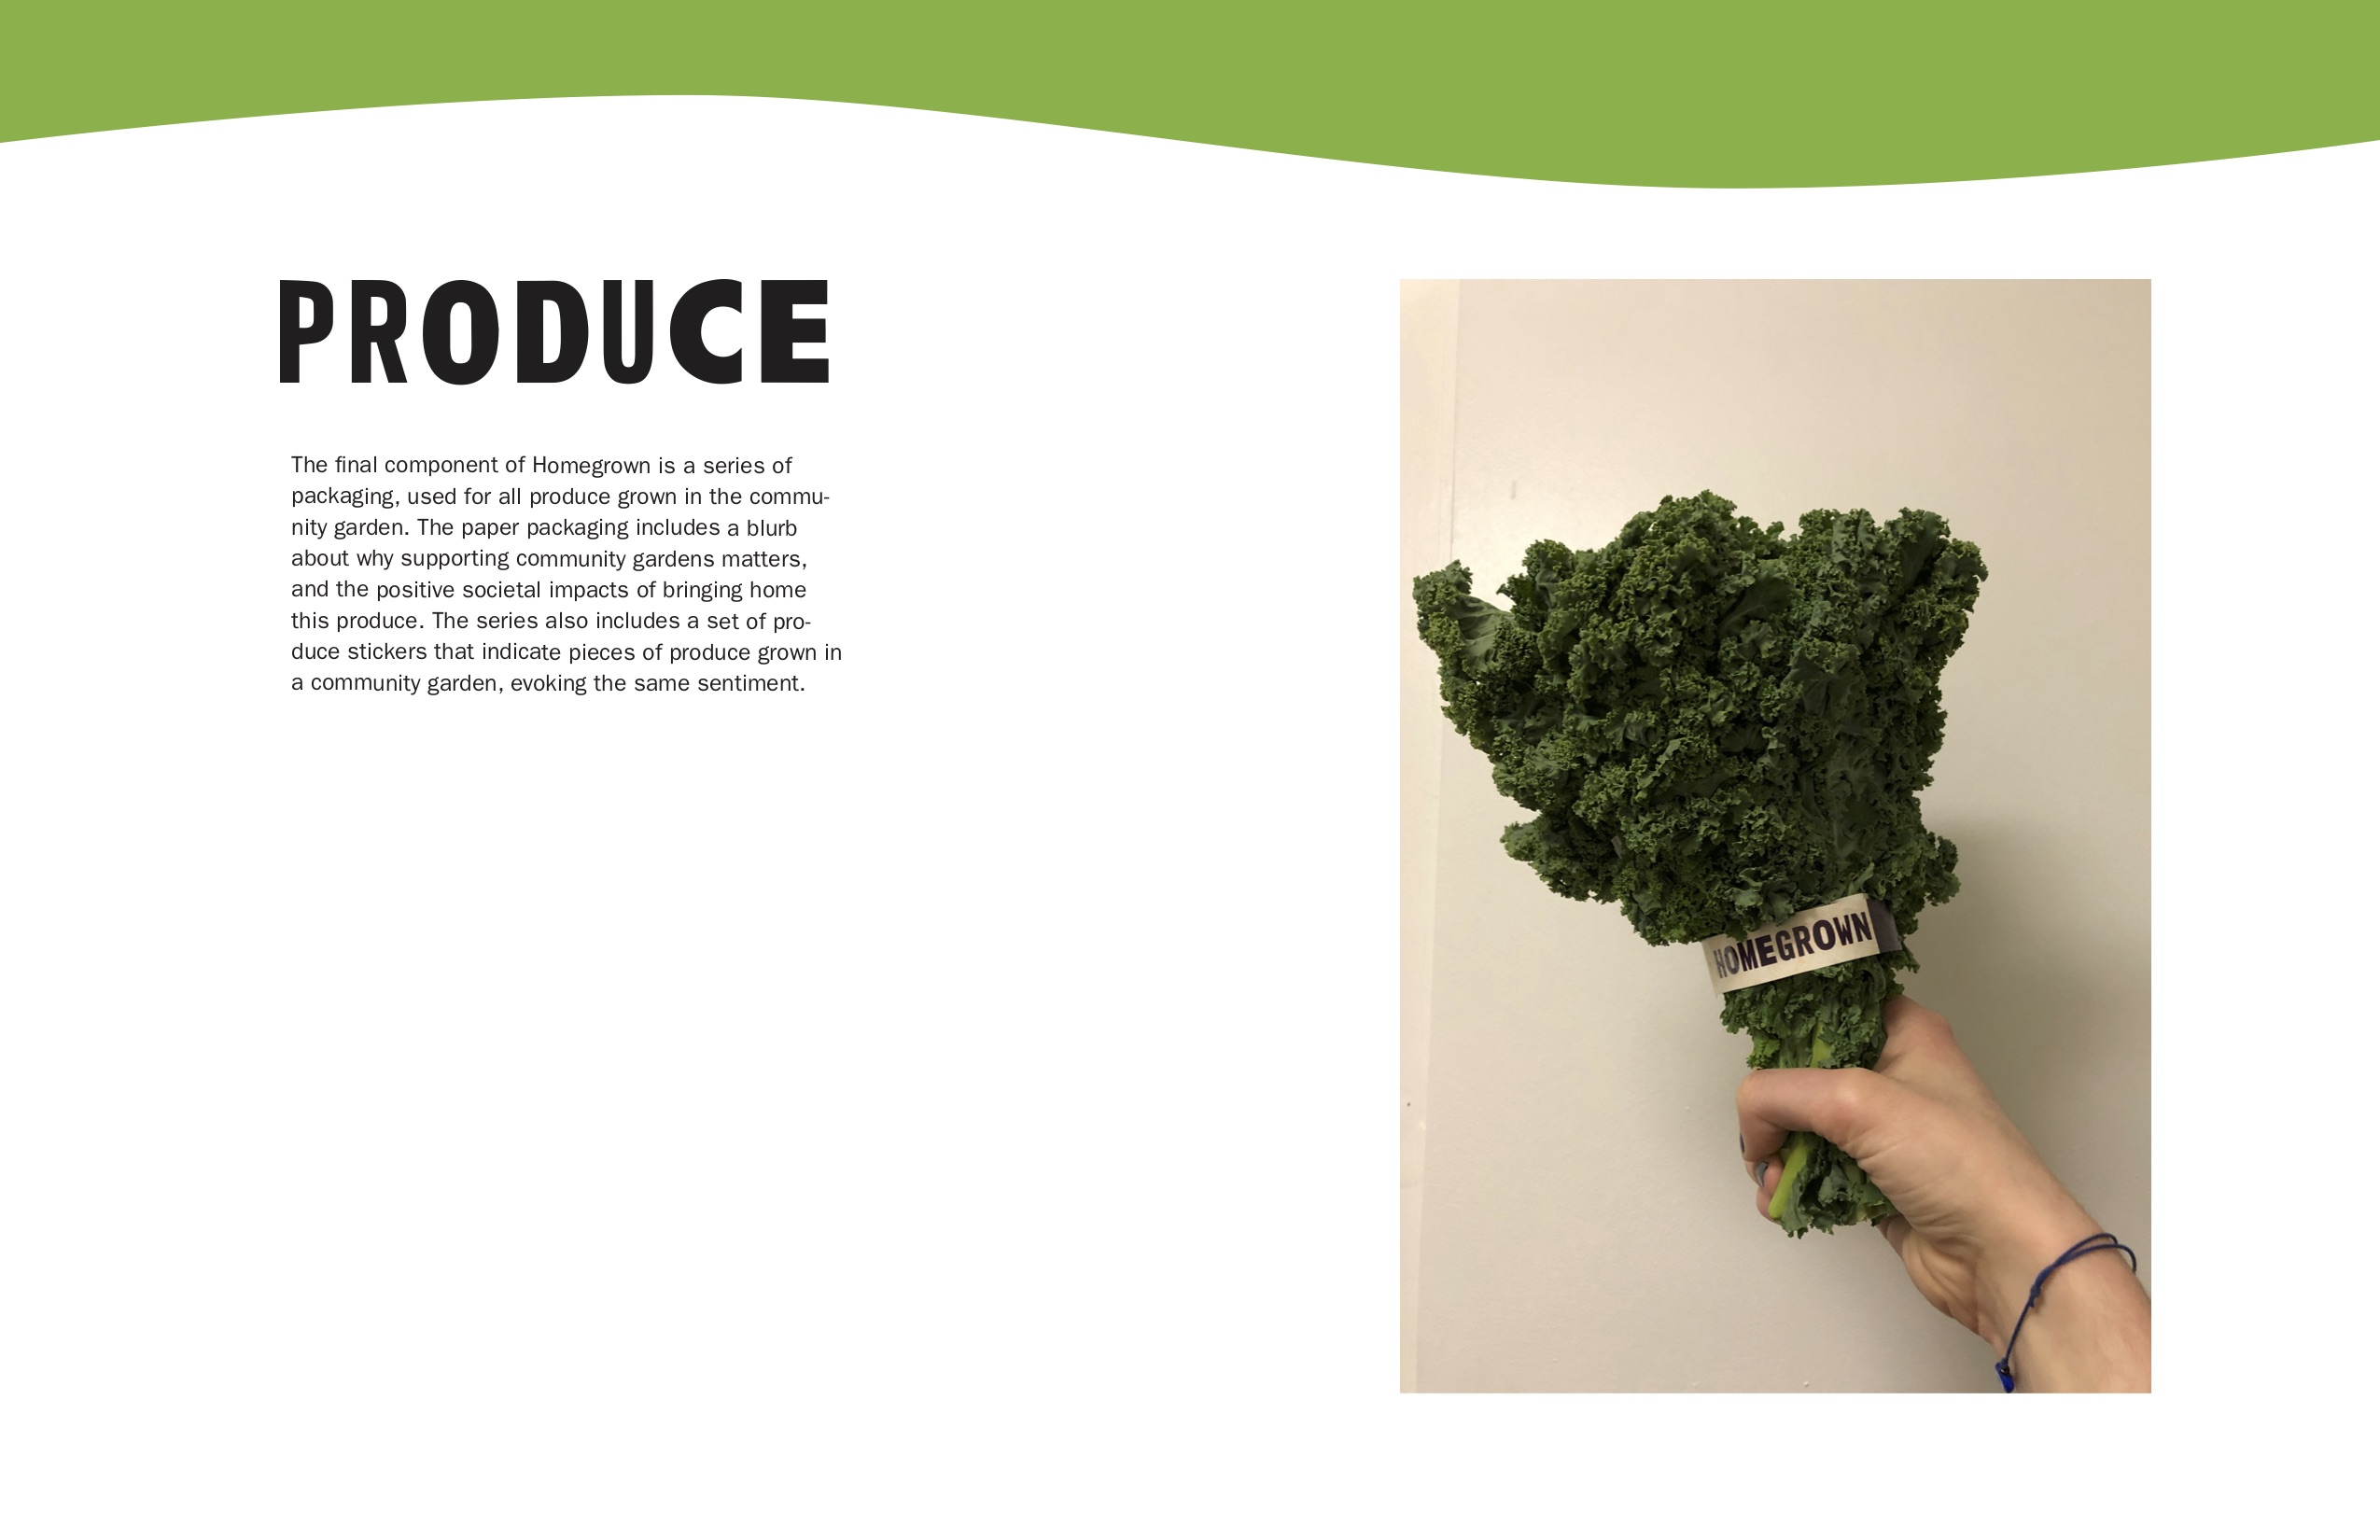 collateral_book_produce